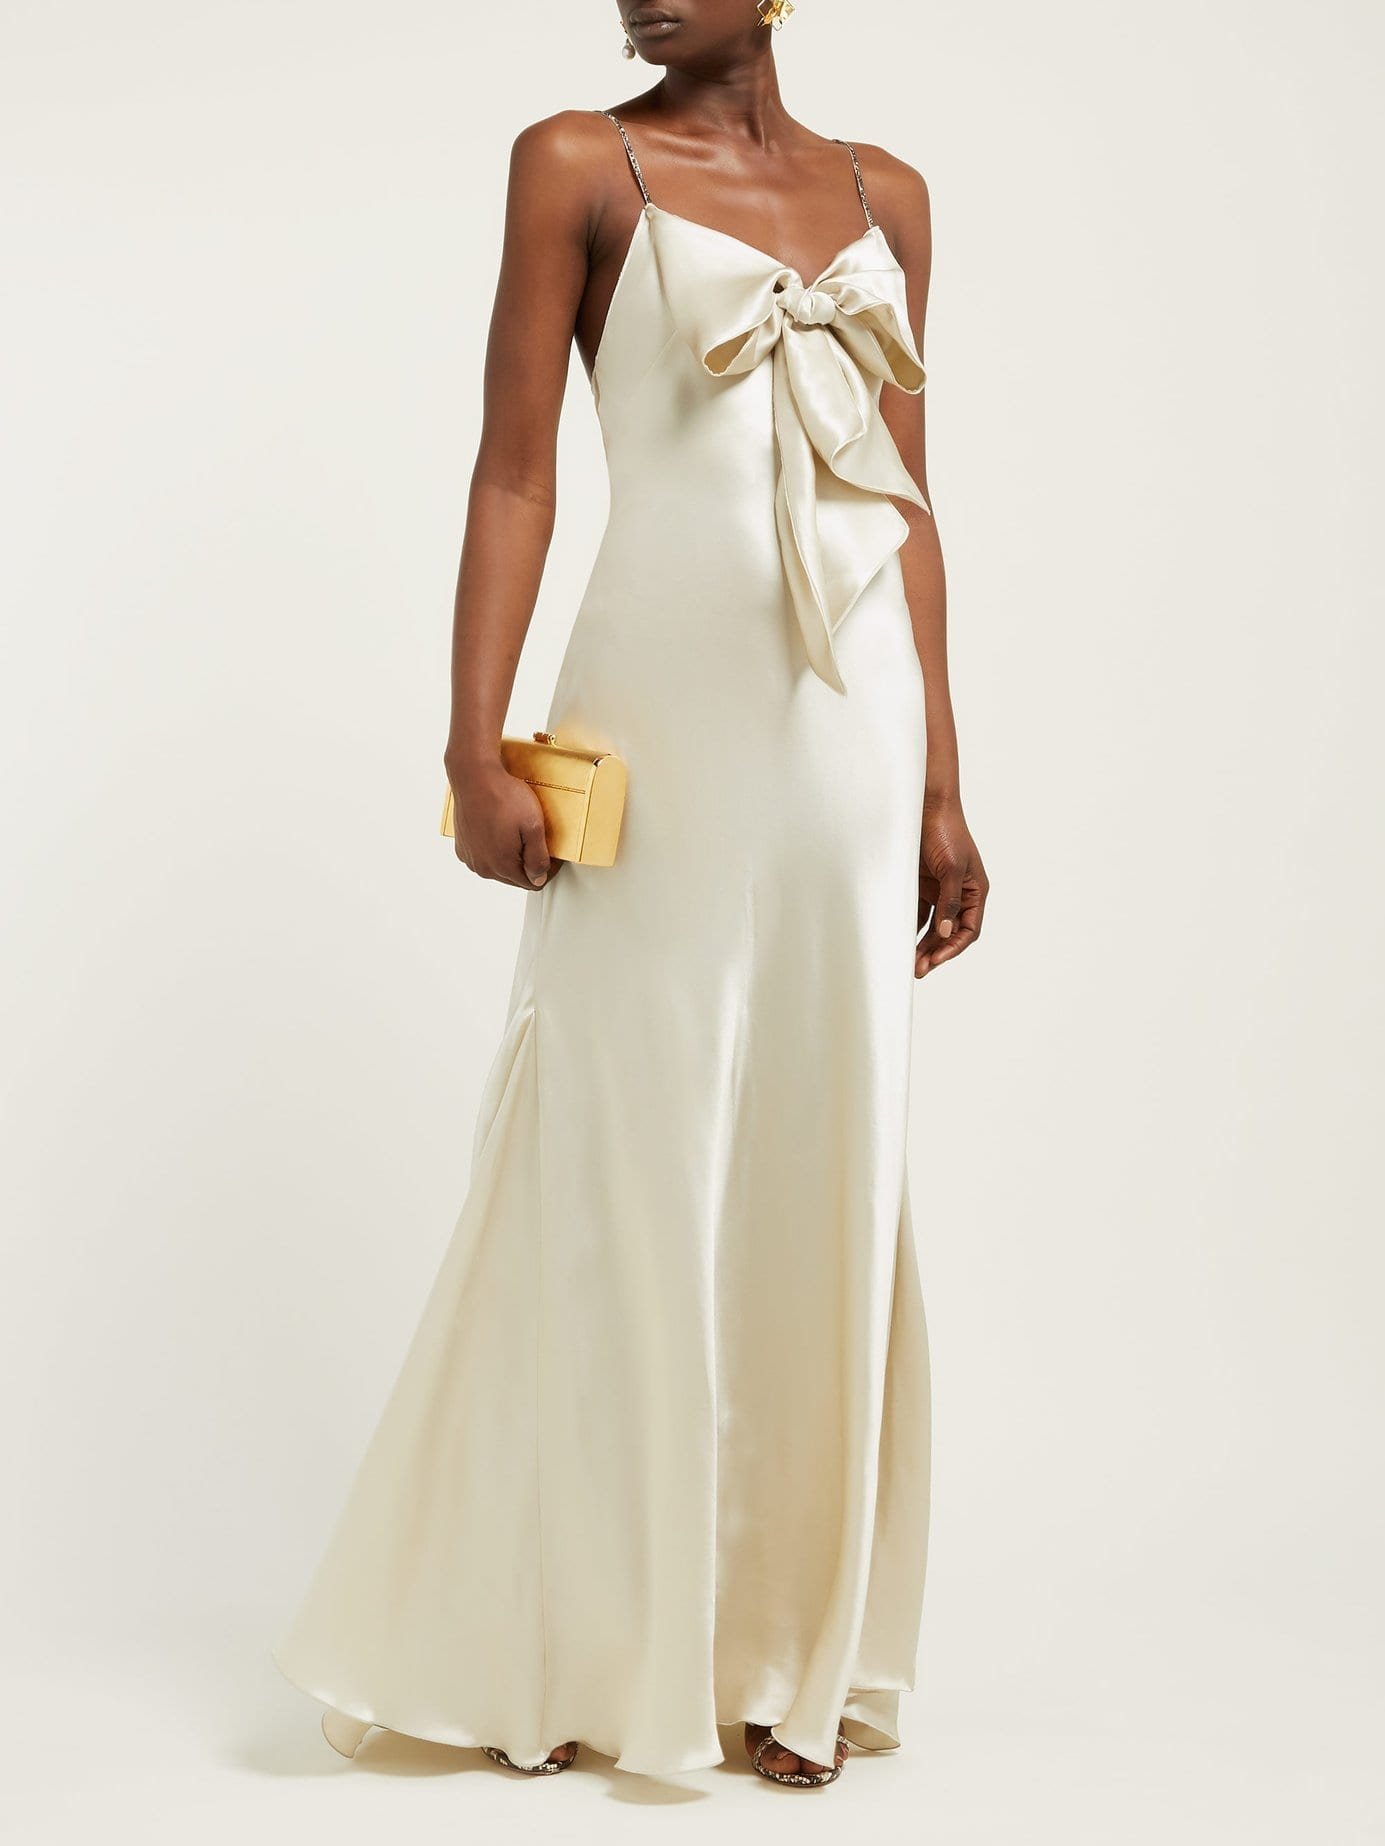 MARIA LUCIA HOHAN Ziya Bow-Embellished Silk-Satin Ivory Dress